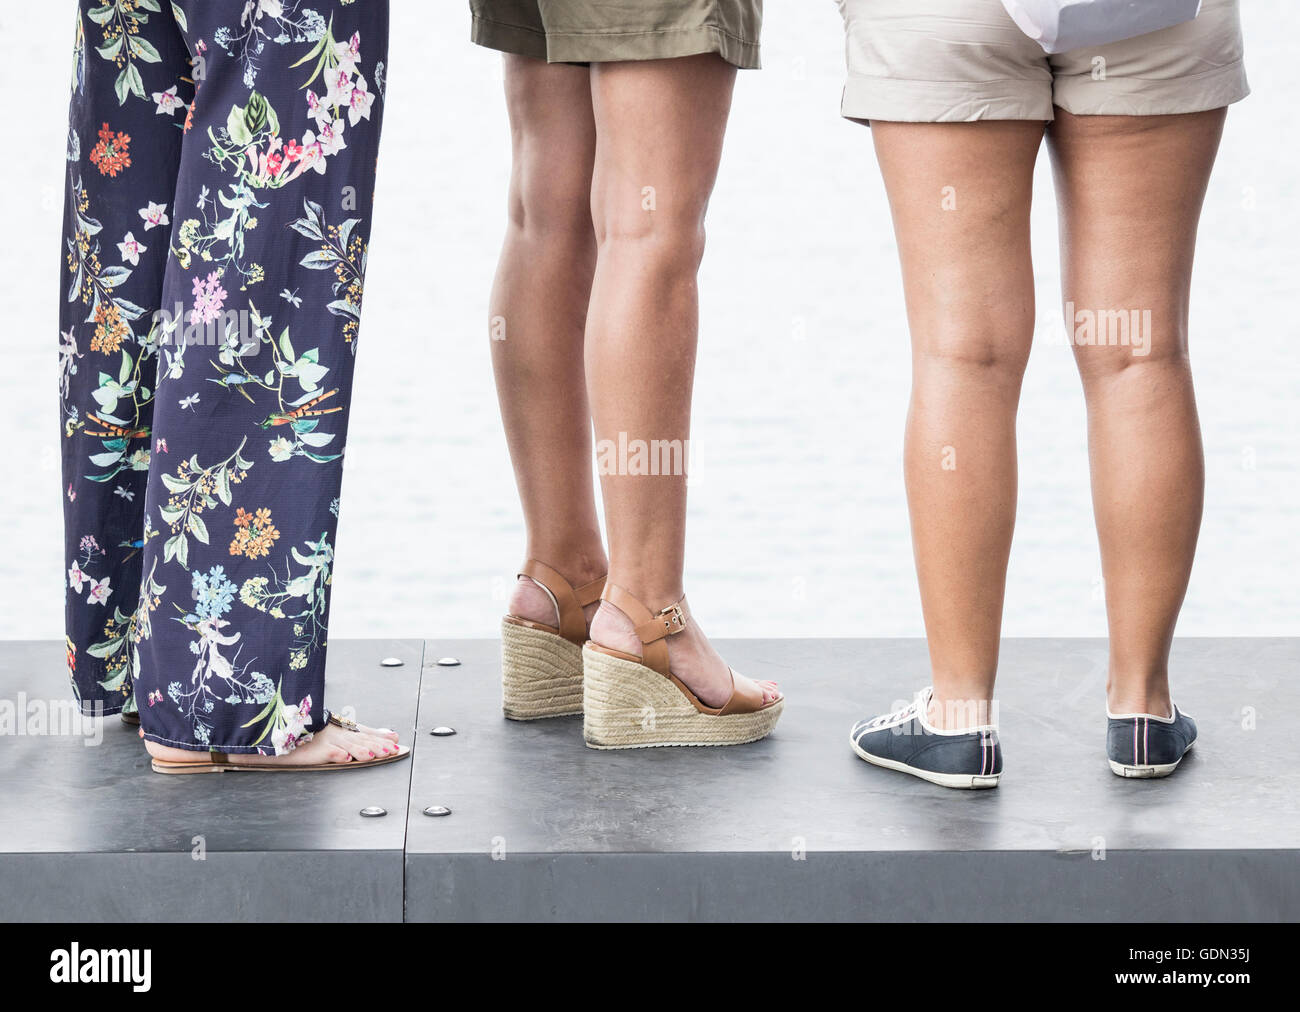 Three women wearing different types of footwear: heels and flats - Stock Image